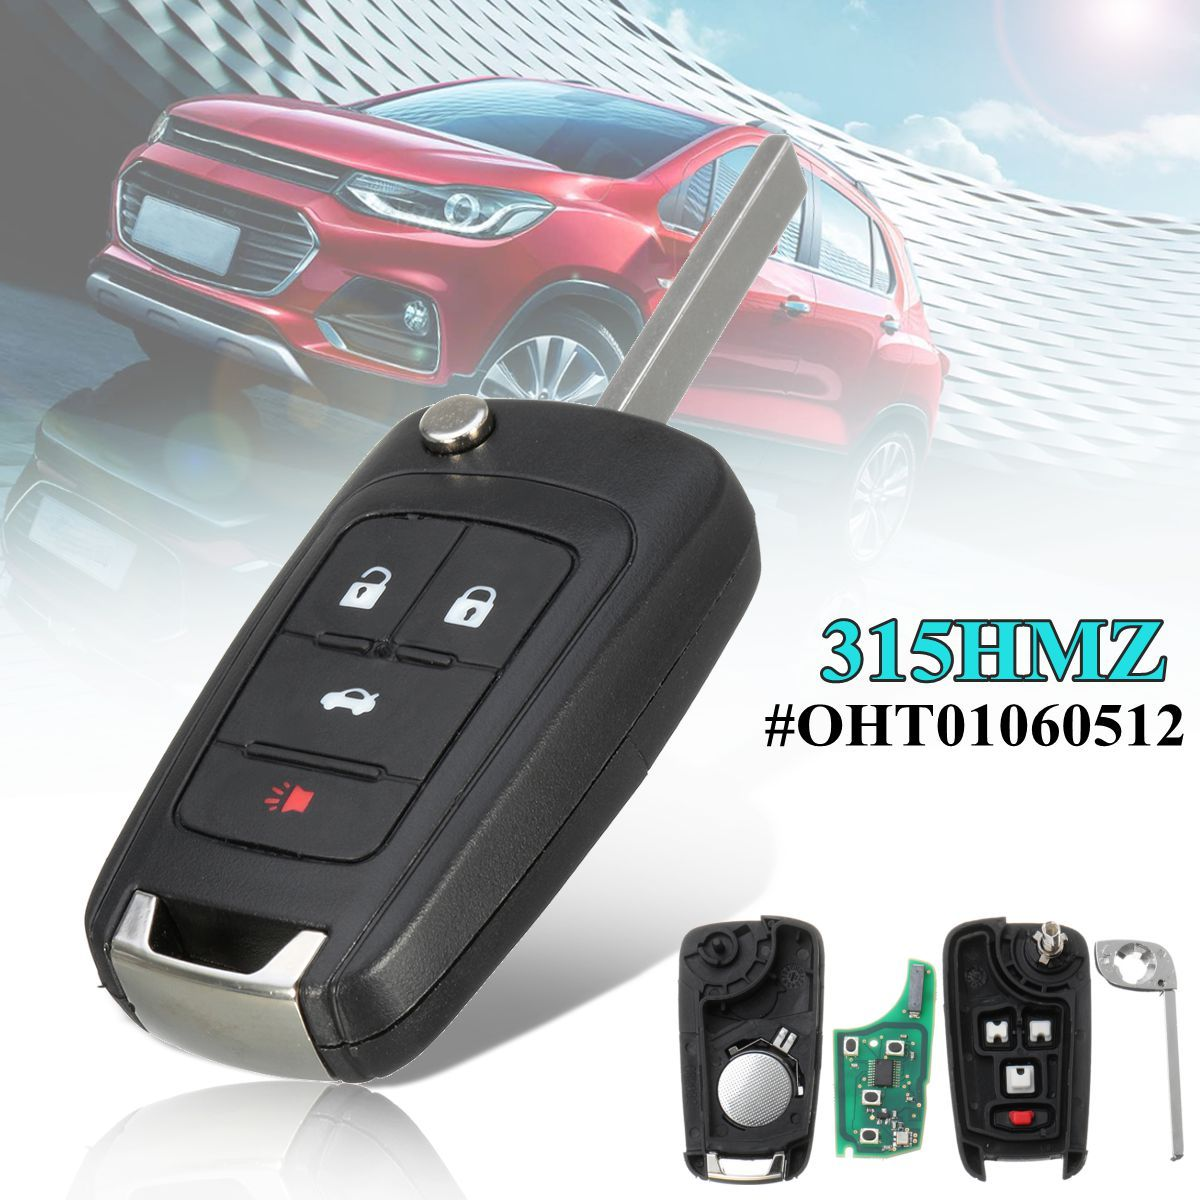 4 Buttons Car Remote Entry Fob Control Flip Key Fob 315HMZ For Buick/GMC/Chevy #OHT010605124 Buttons Car Remote Entry Fob Control Flip Key Fob 315HMZ For Buick/GMC/Chevy #OHT01060512